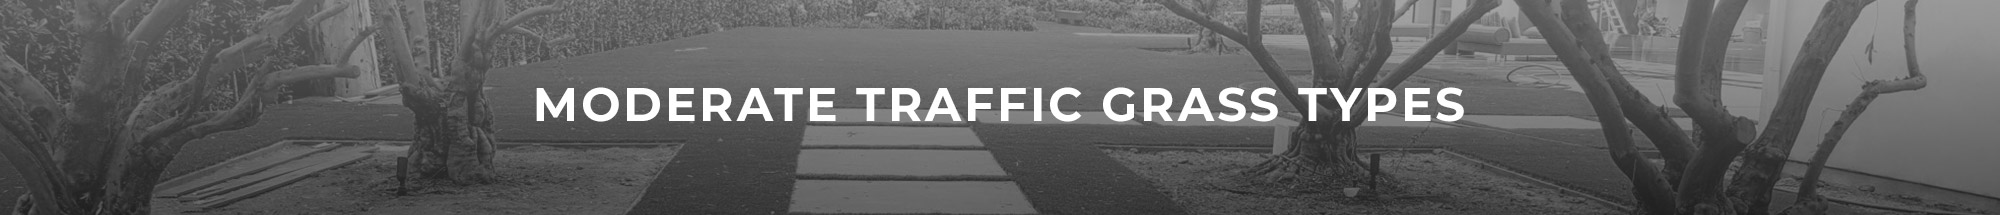 Header Image of Moderate Traffic grass types